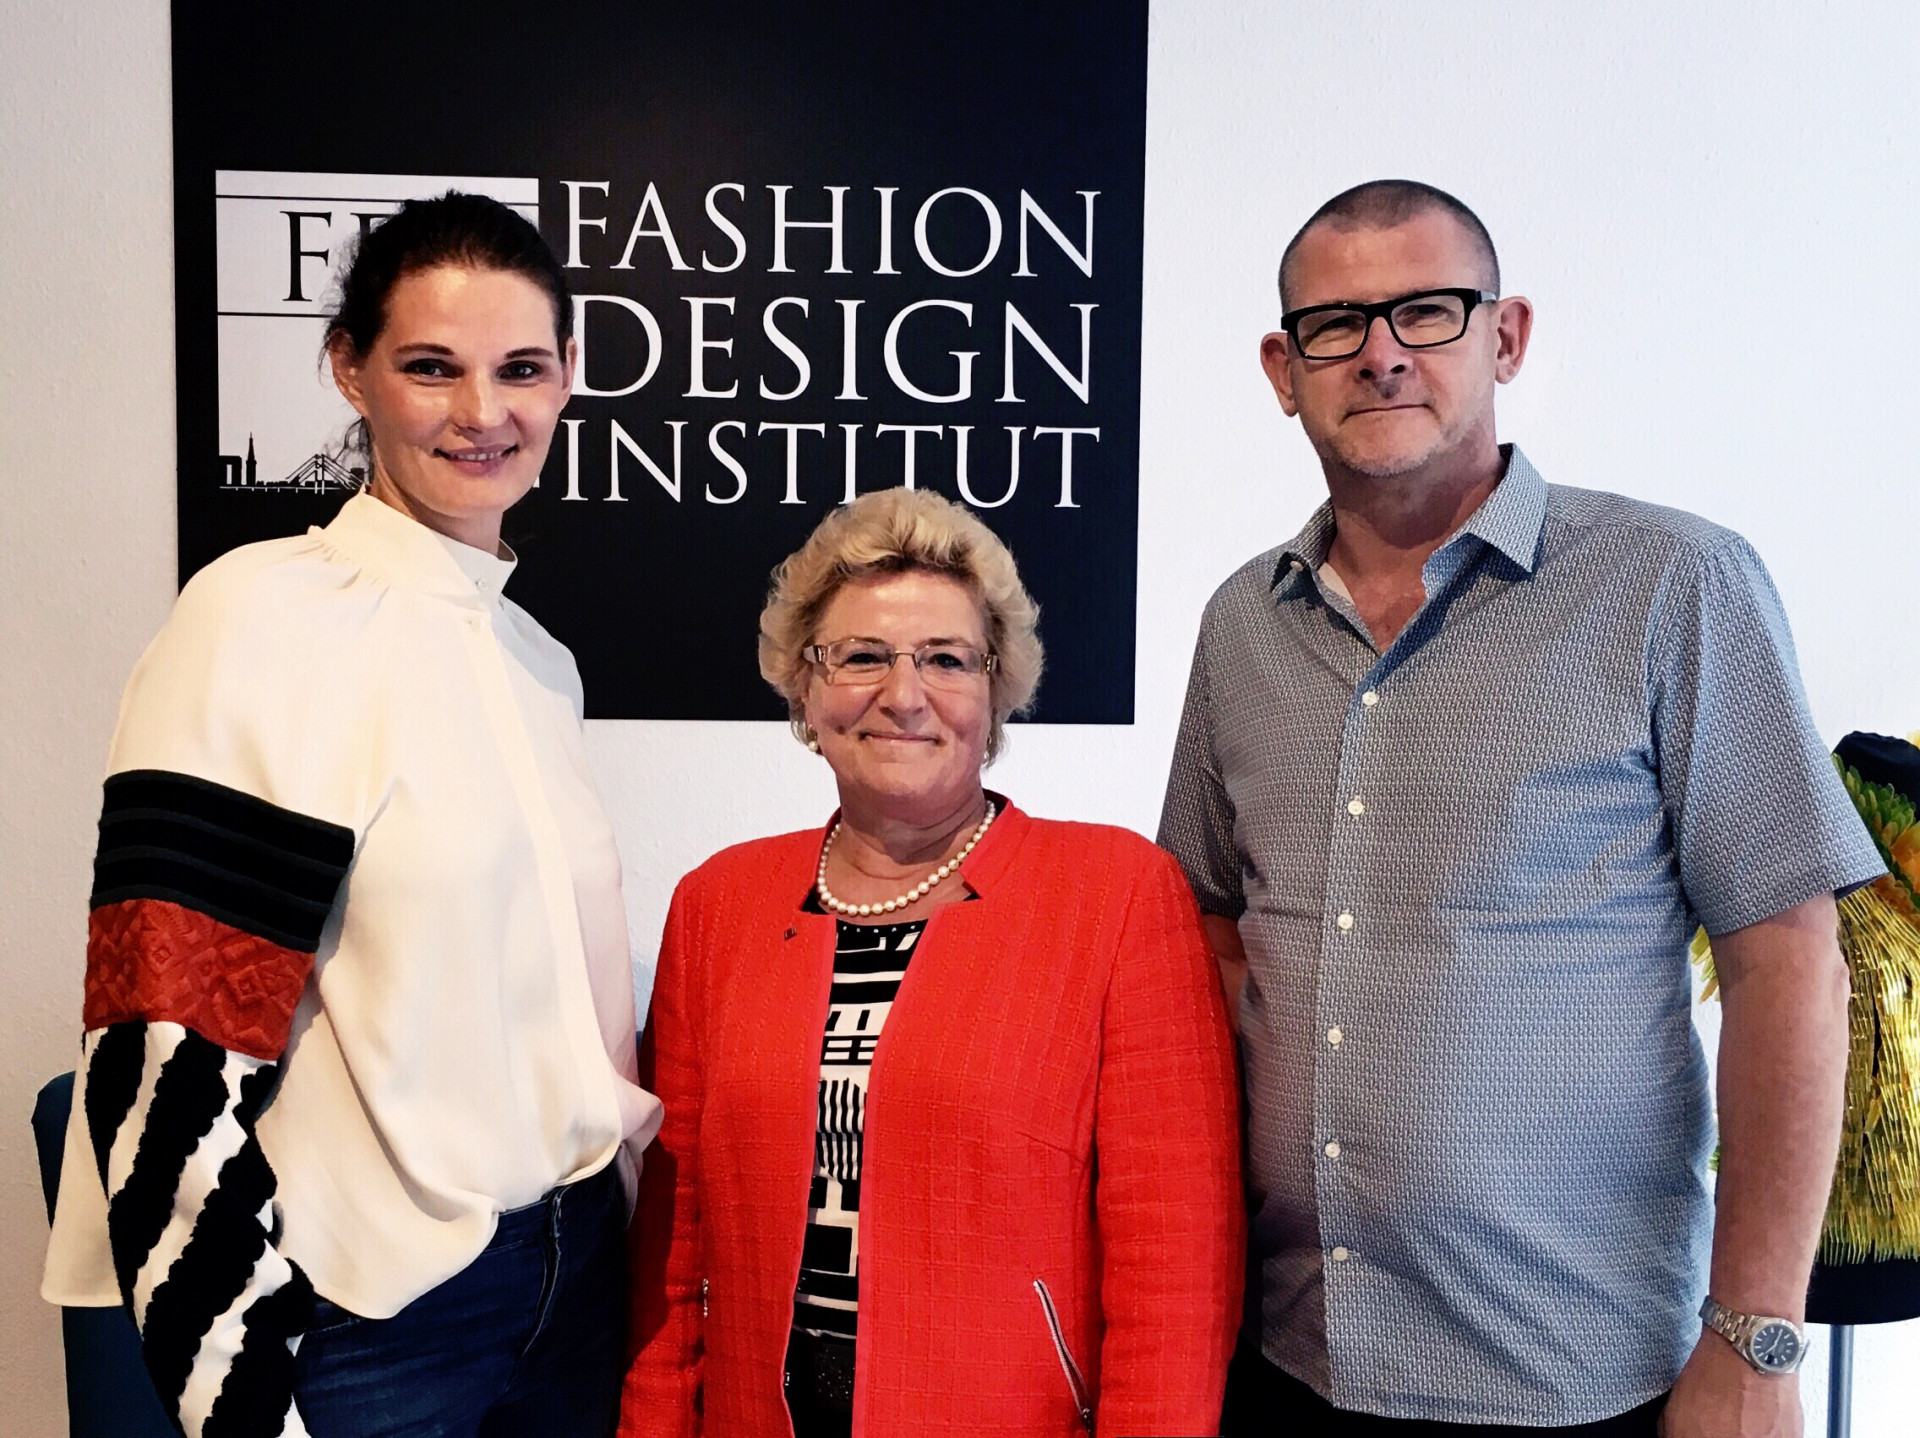 Sylvia Pantel Visits The Fdi Fashion Design Institut